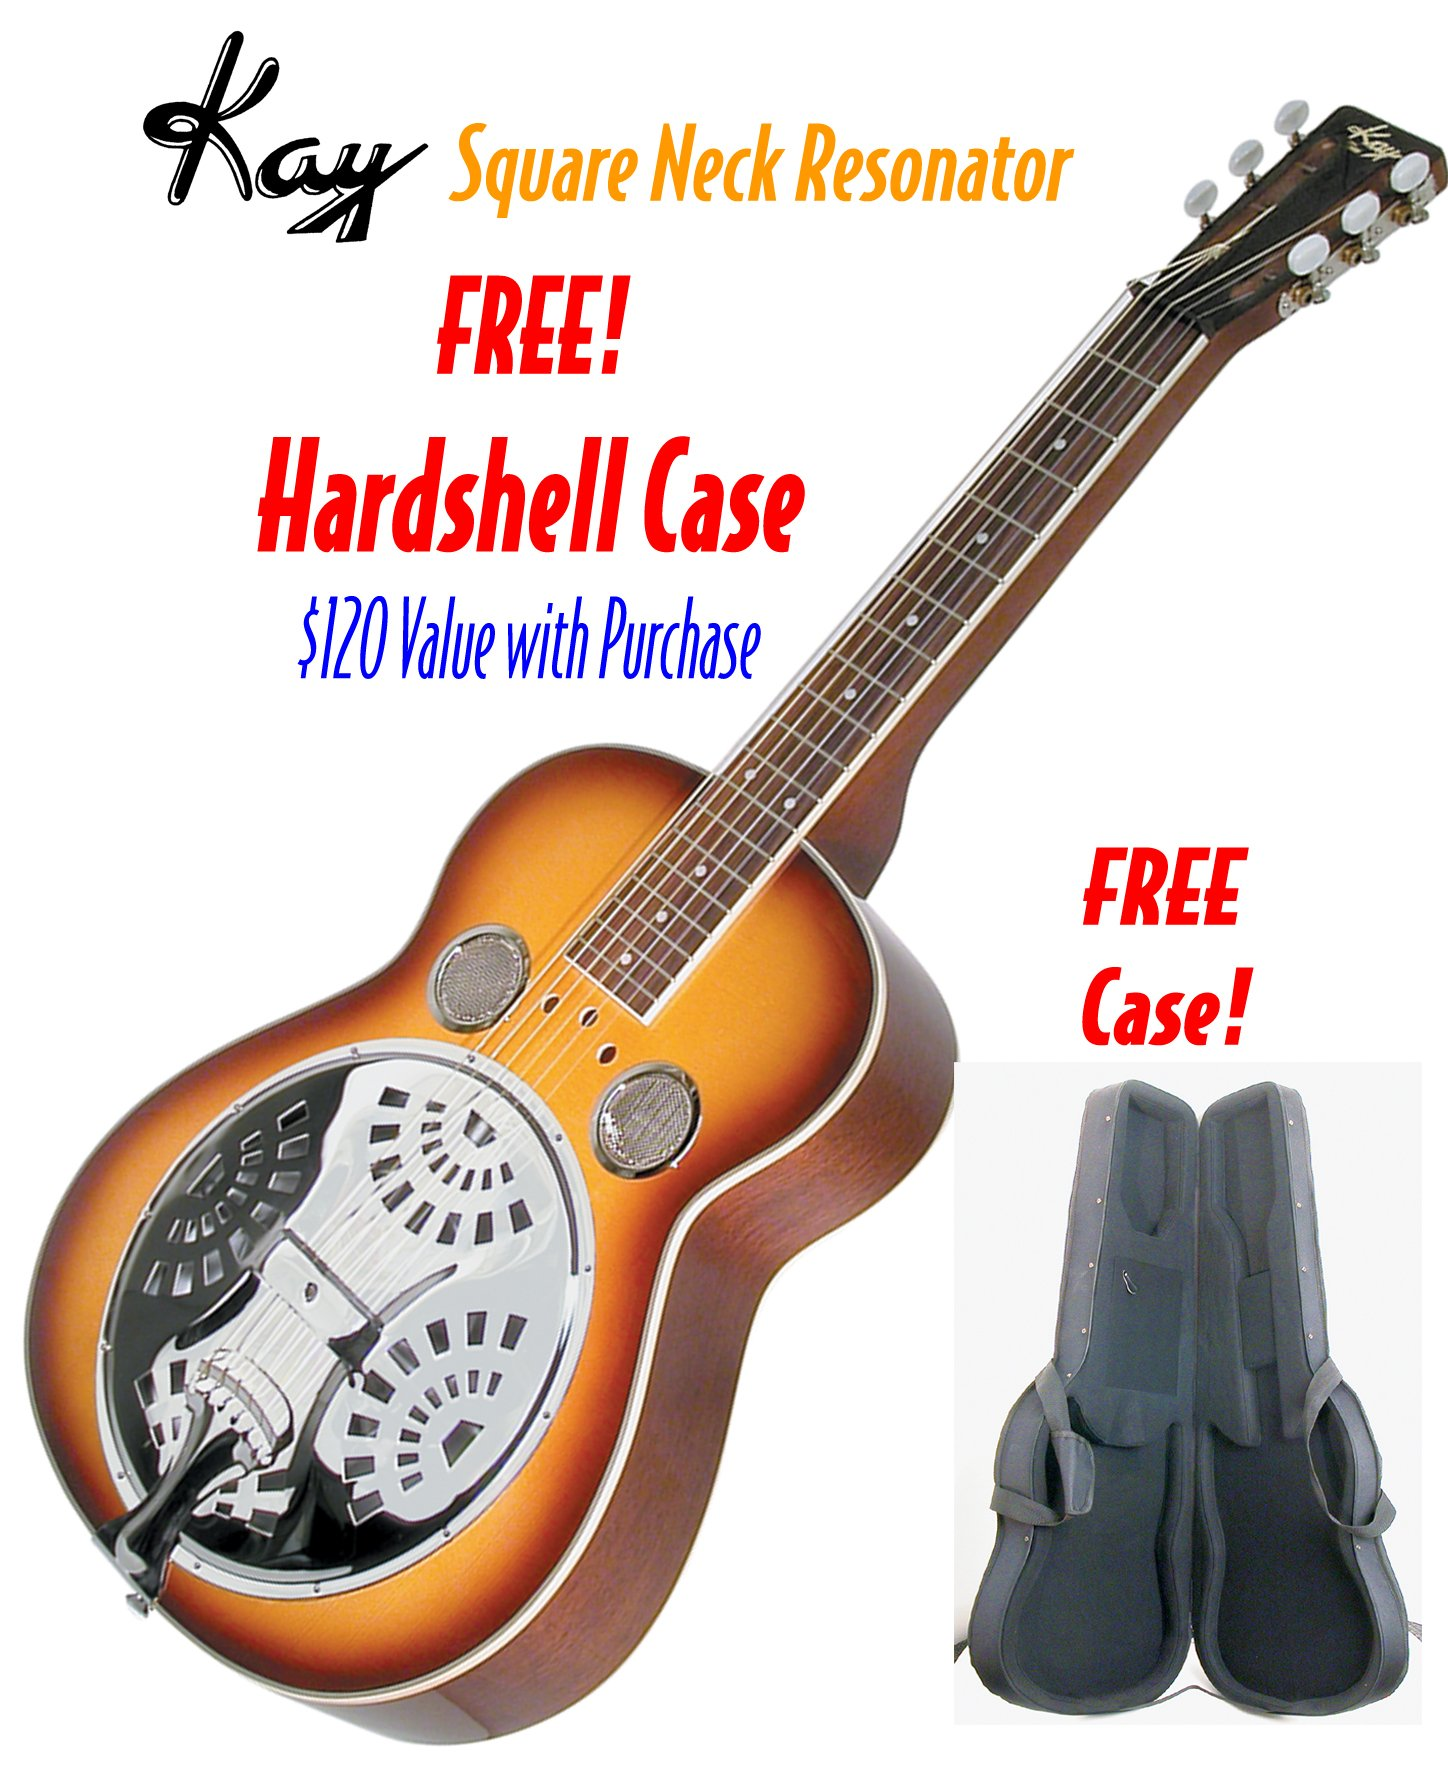 Kay KDS336-C Square Neck Resonator Guitar with FREE Case by Kay